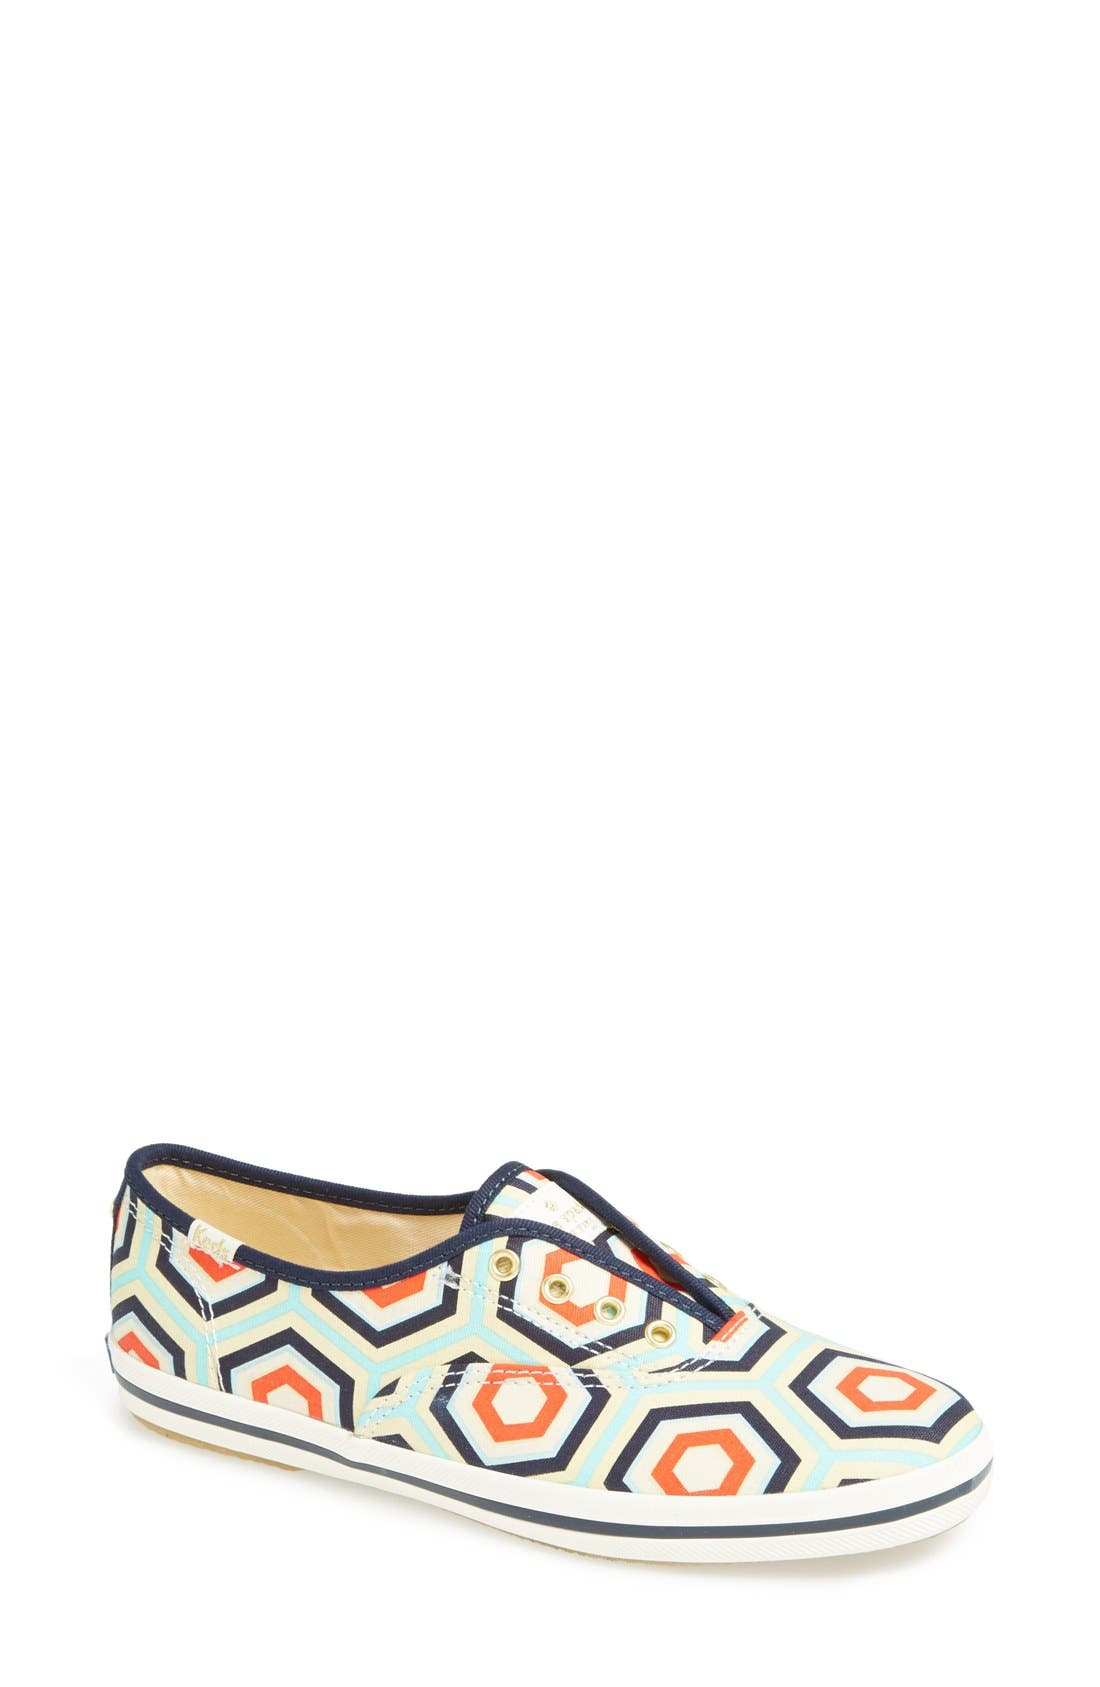 Main Image - Keds® for kate spade new york 'champ' print canvas sneaker